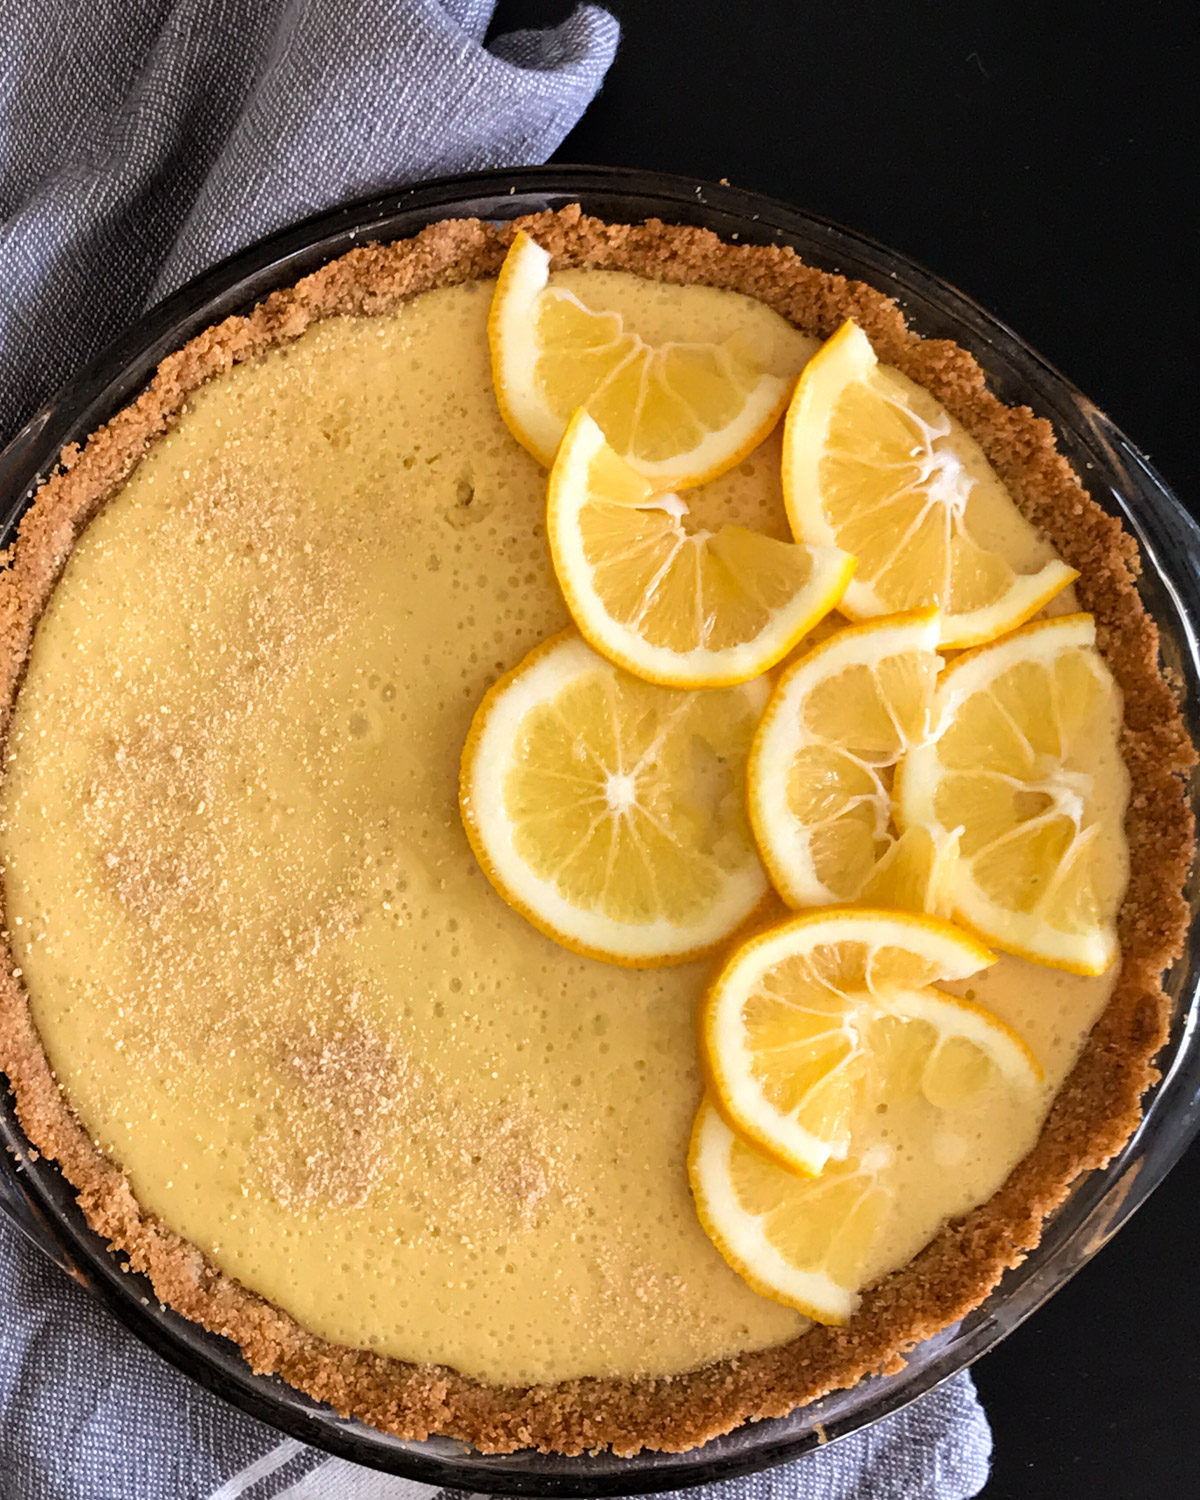 Lemon pie made with fresh squeezed Meyer lemons and cream cheese. Topped with thin lemon slices.